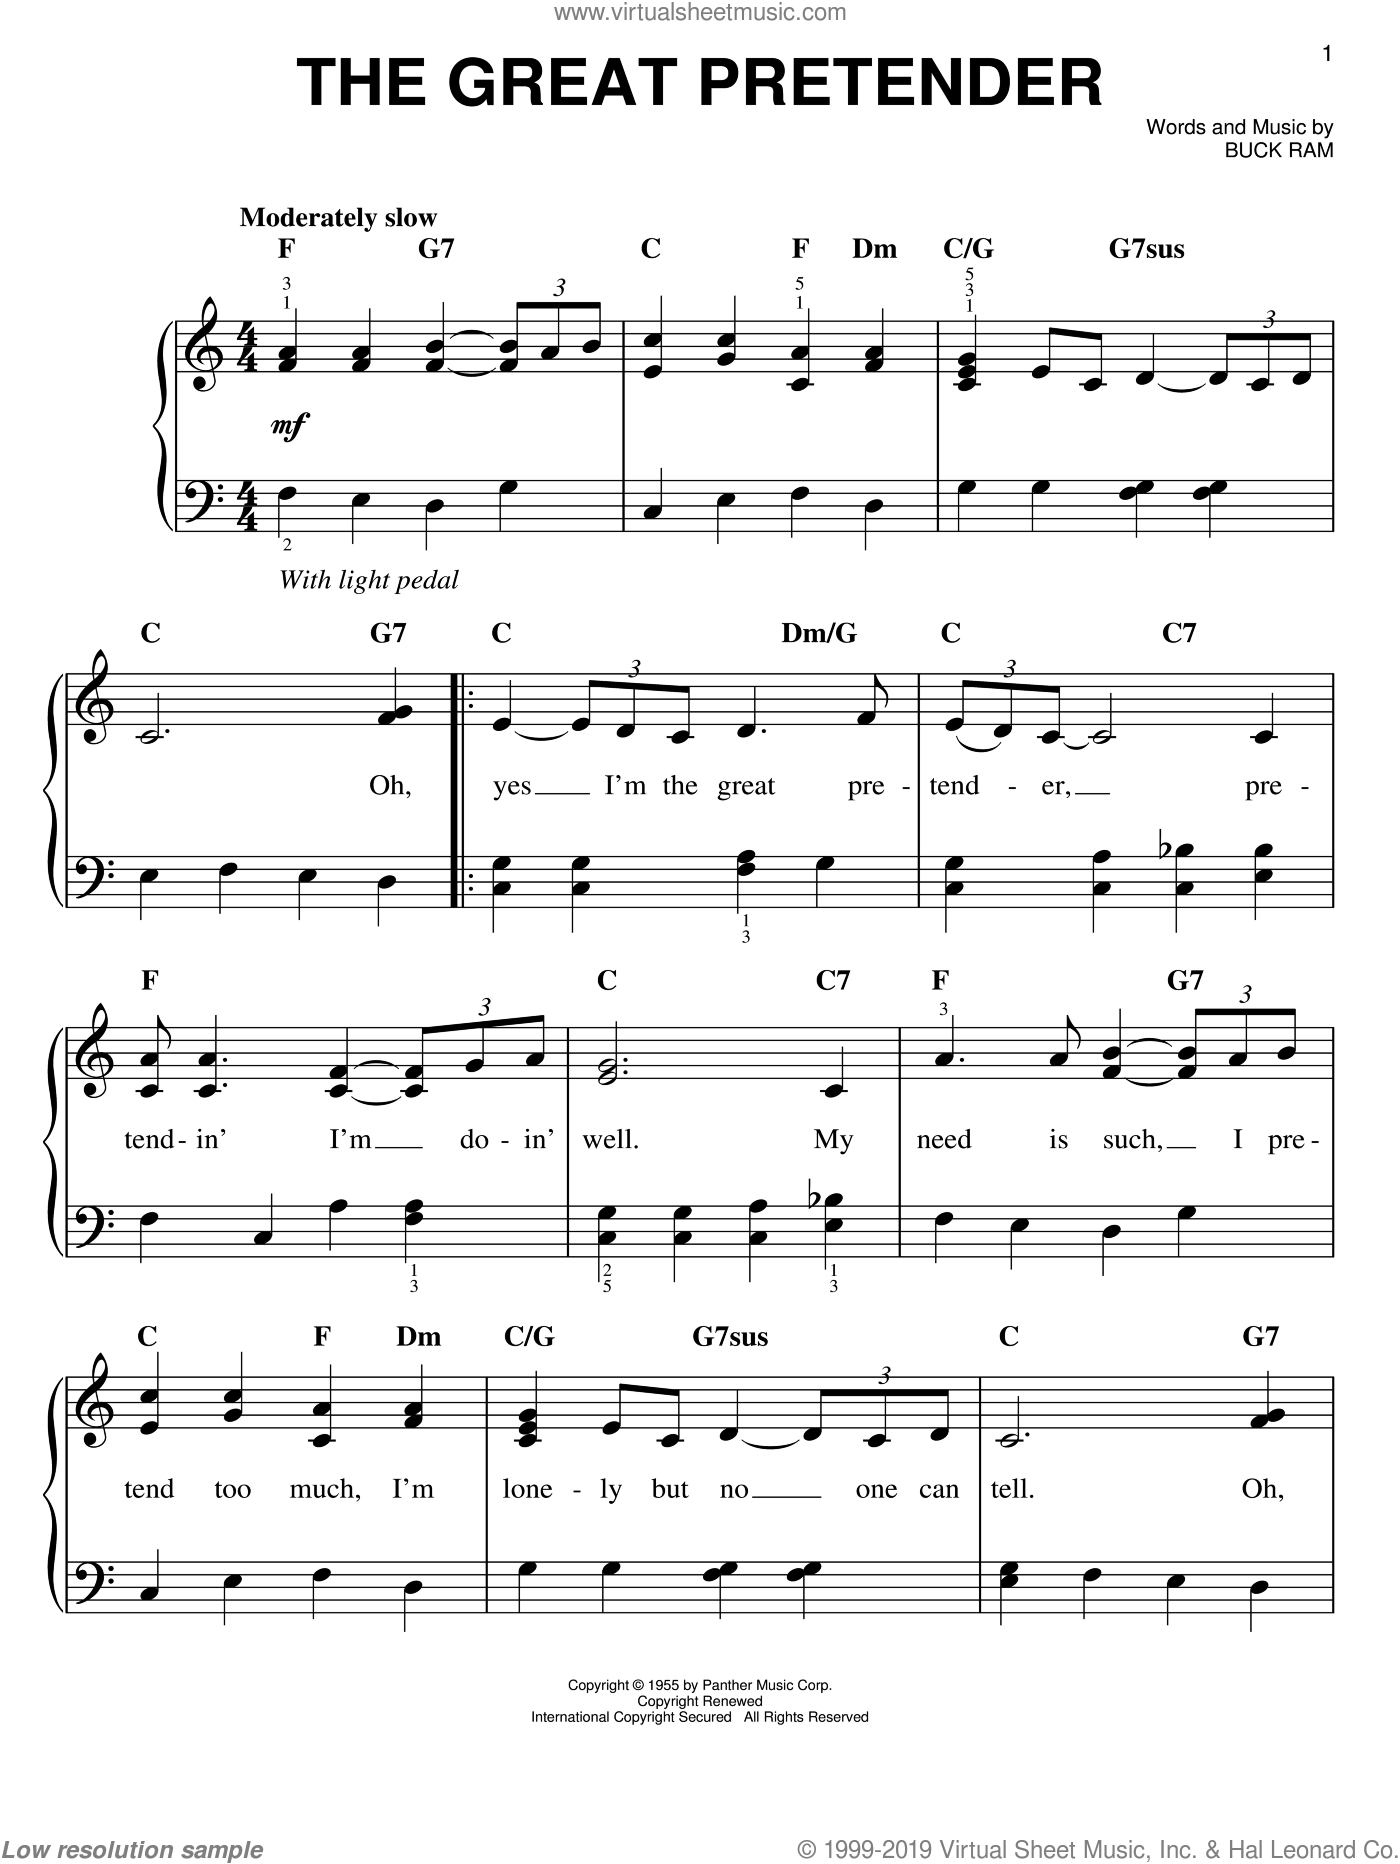 The Great Pretender, (easy) sheet music for piano solo by The Platters and Buck Ram, easy skill level